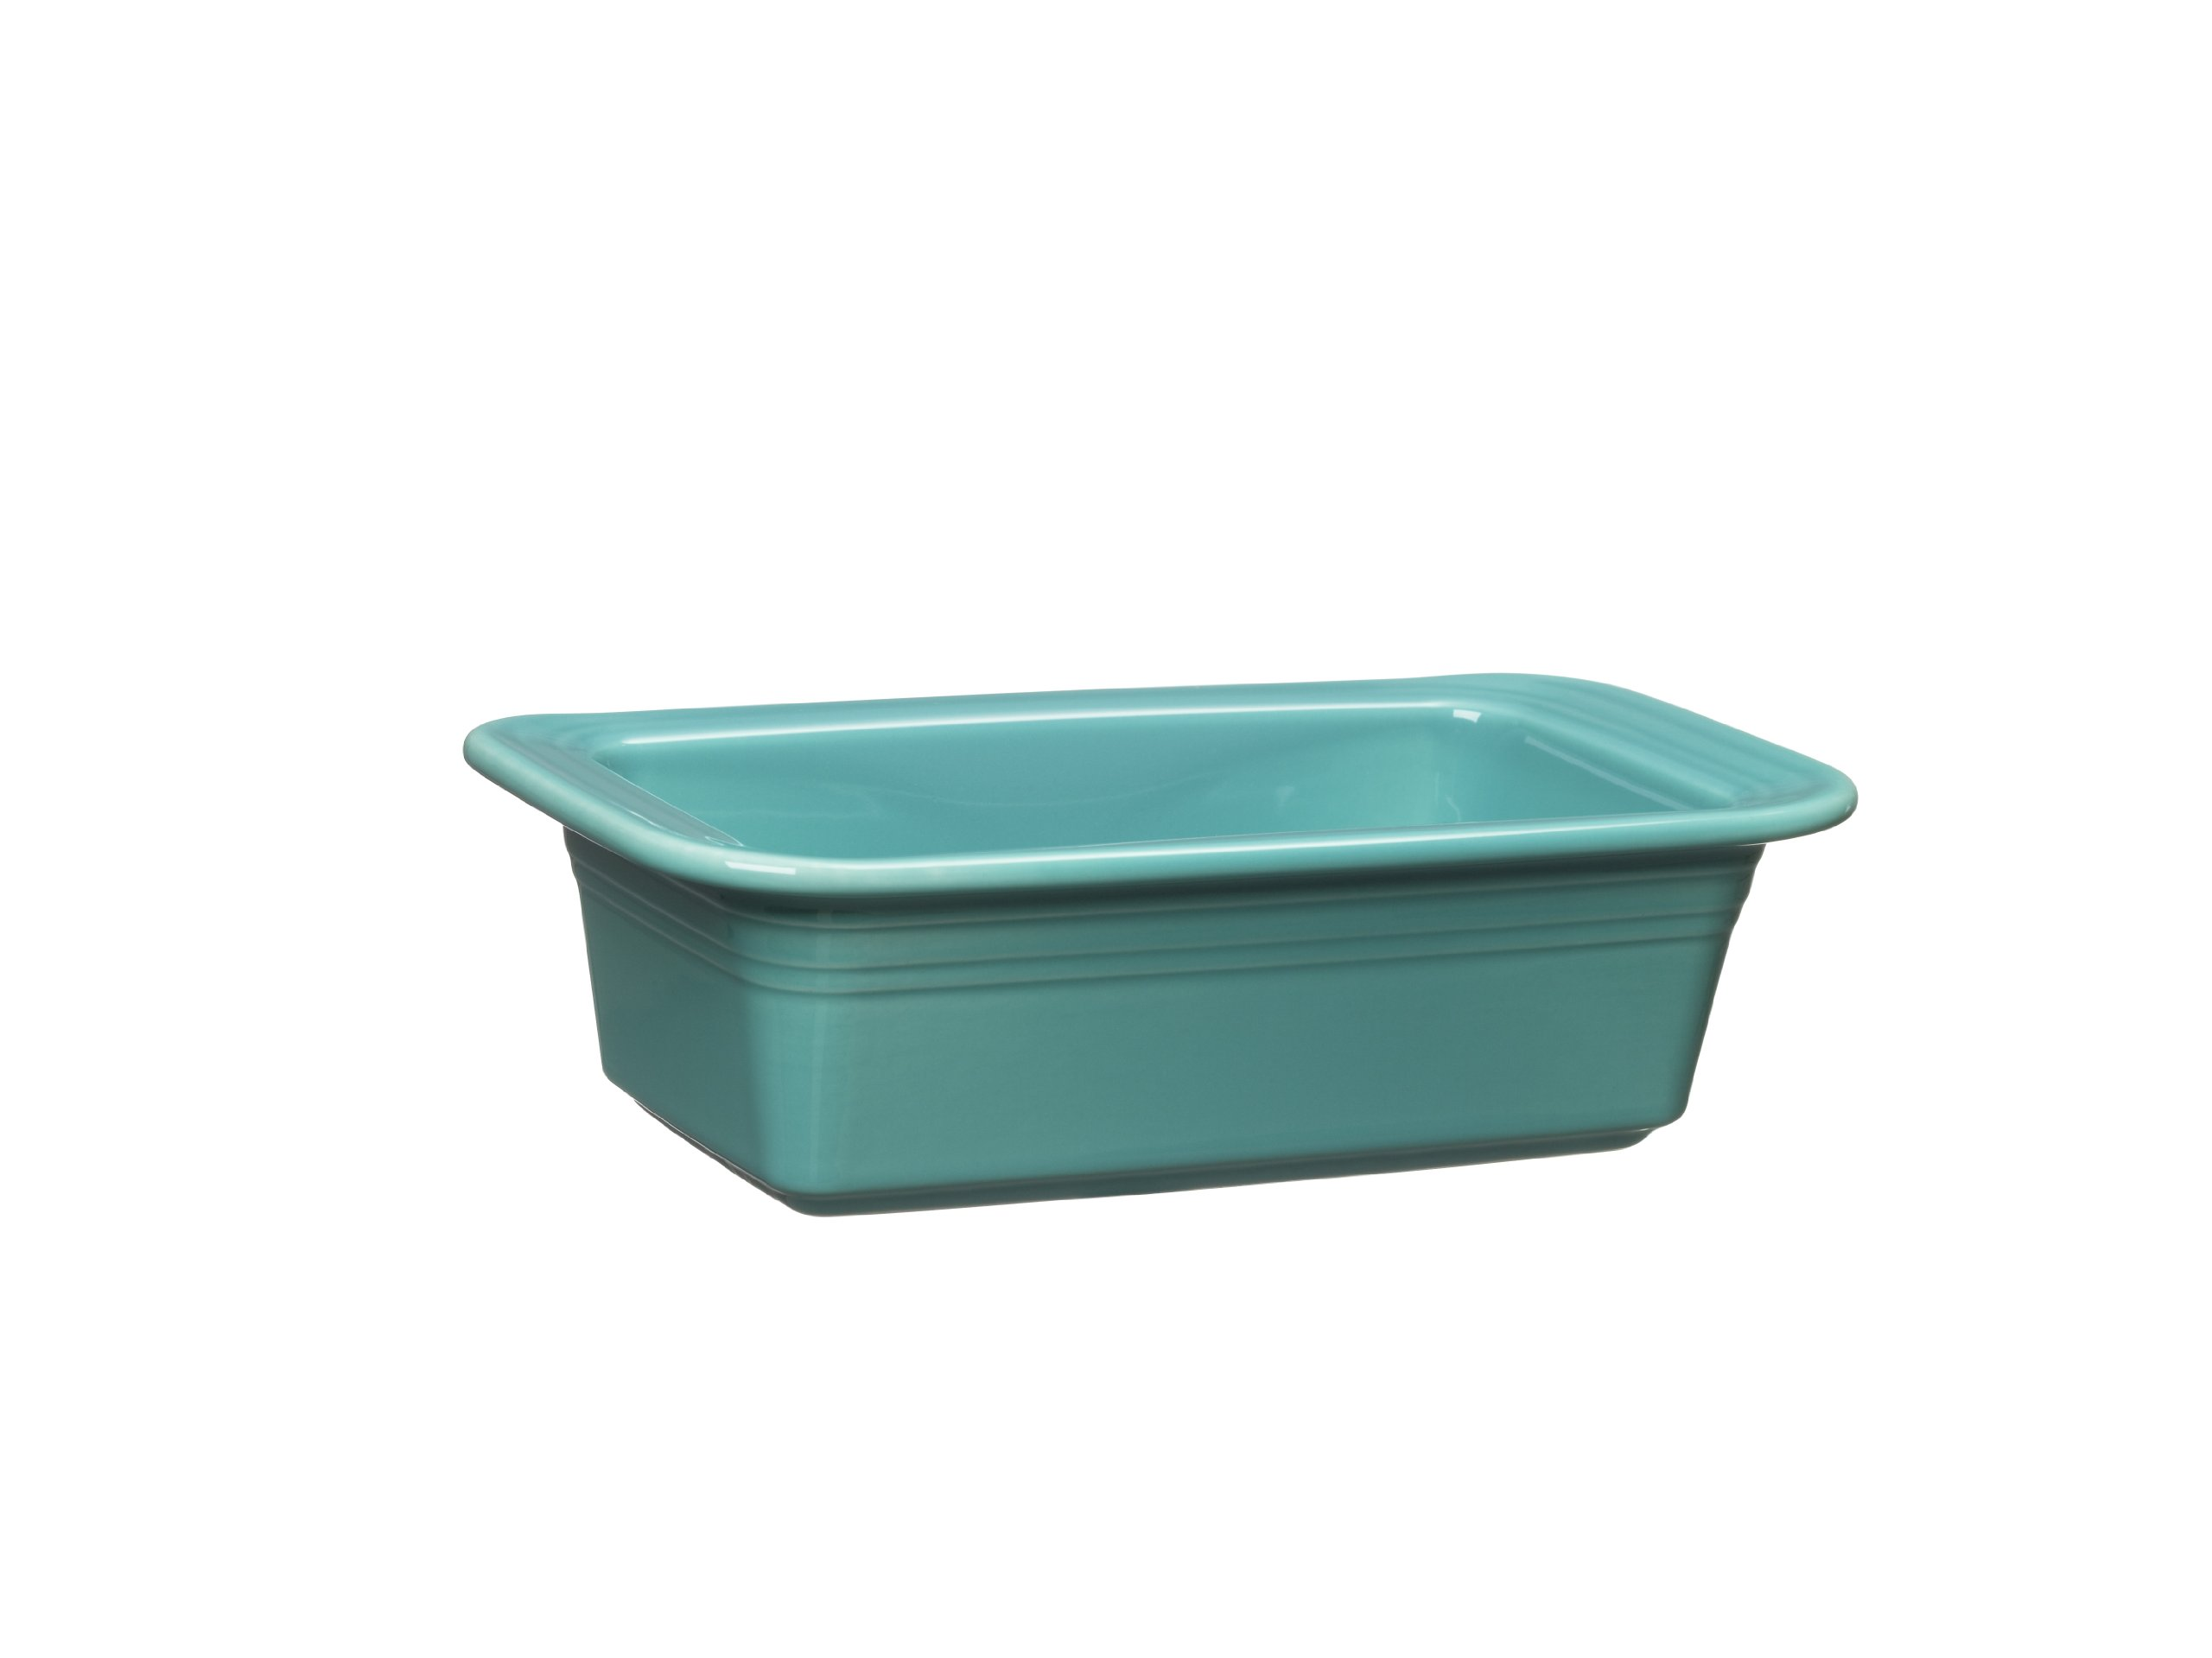 Fiesta 813-107 Loaf Pan, 5-3/4-Inch by 10-3/4-Inch, Turquoise